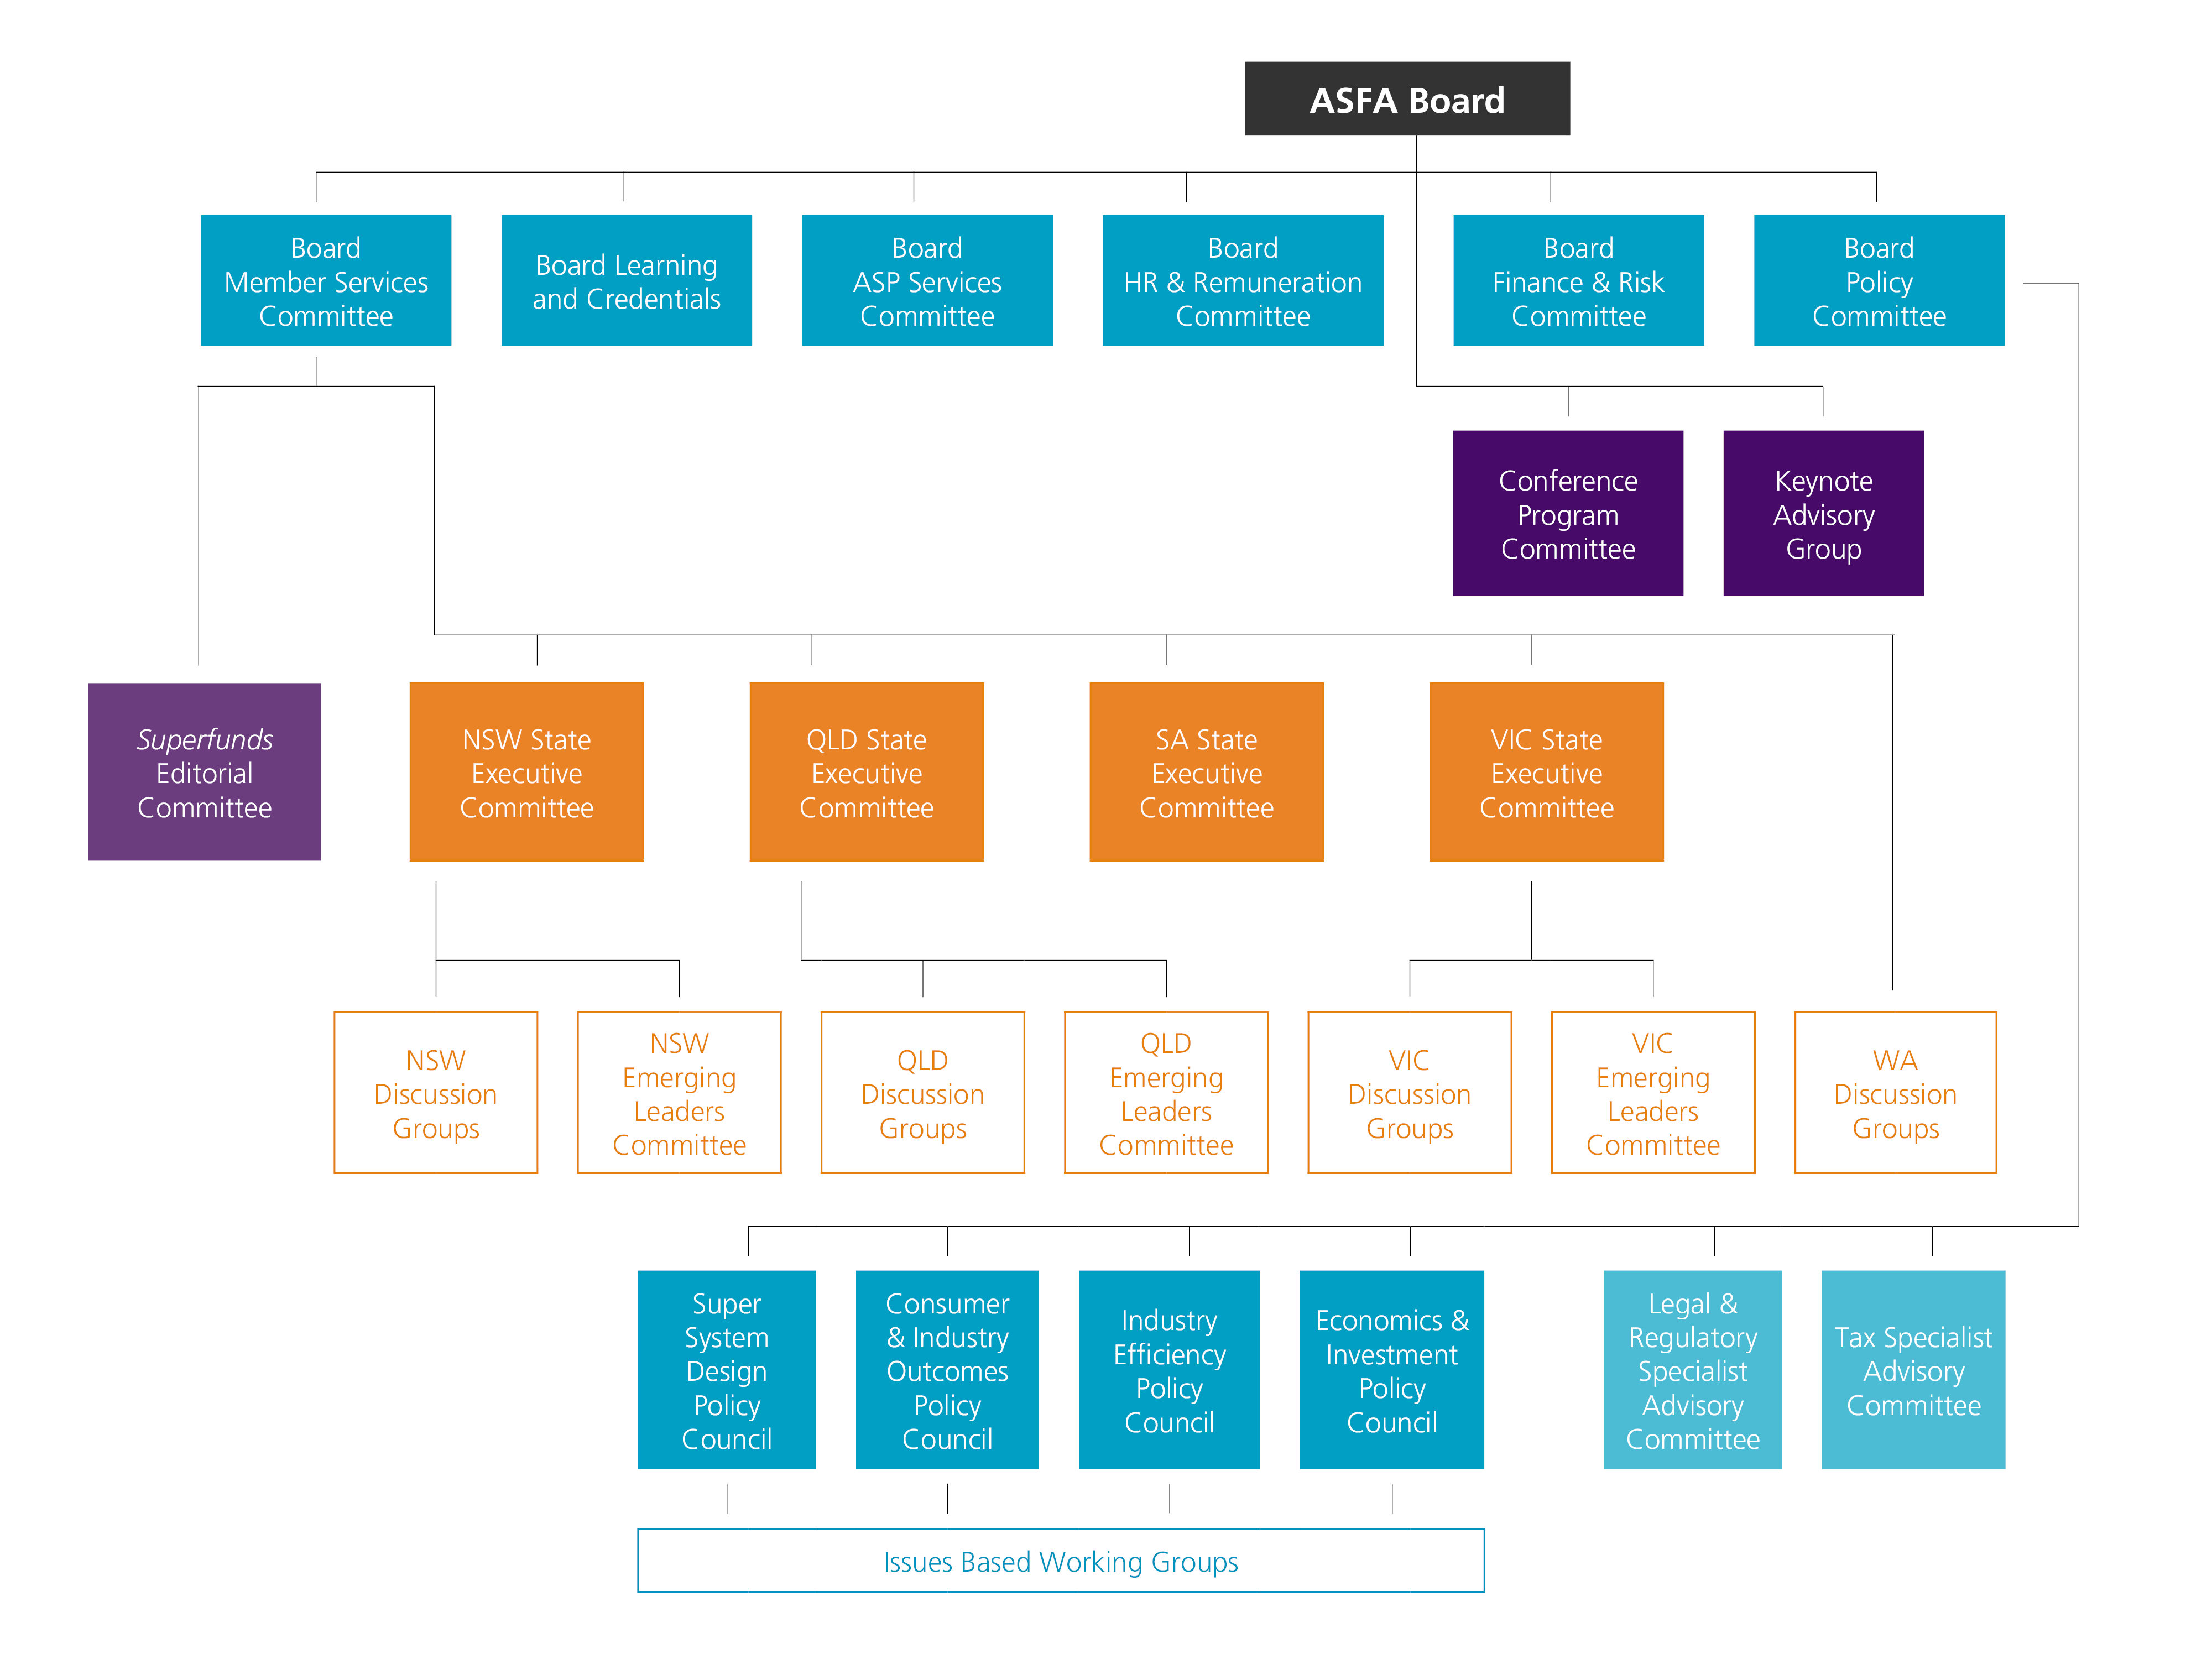 ASFA board and governance structure